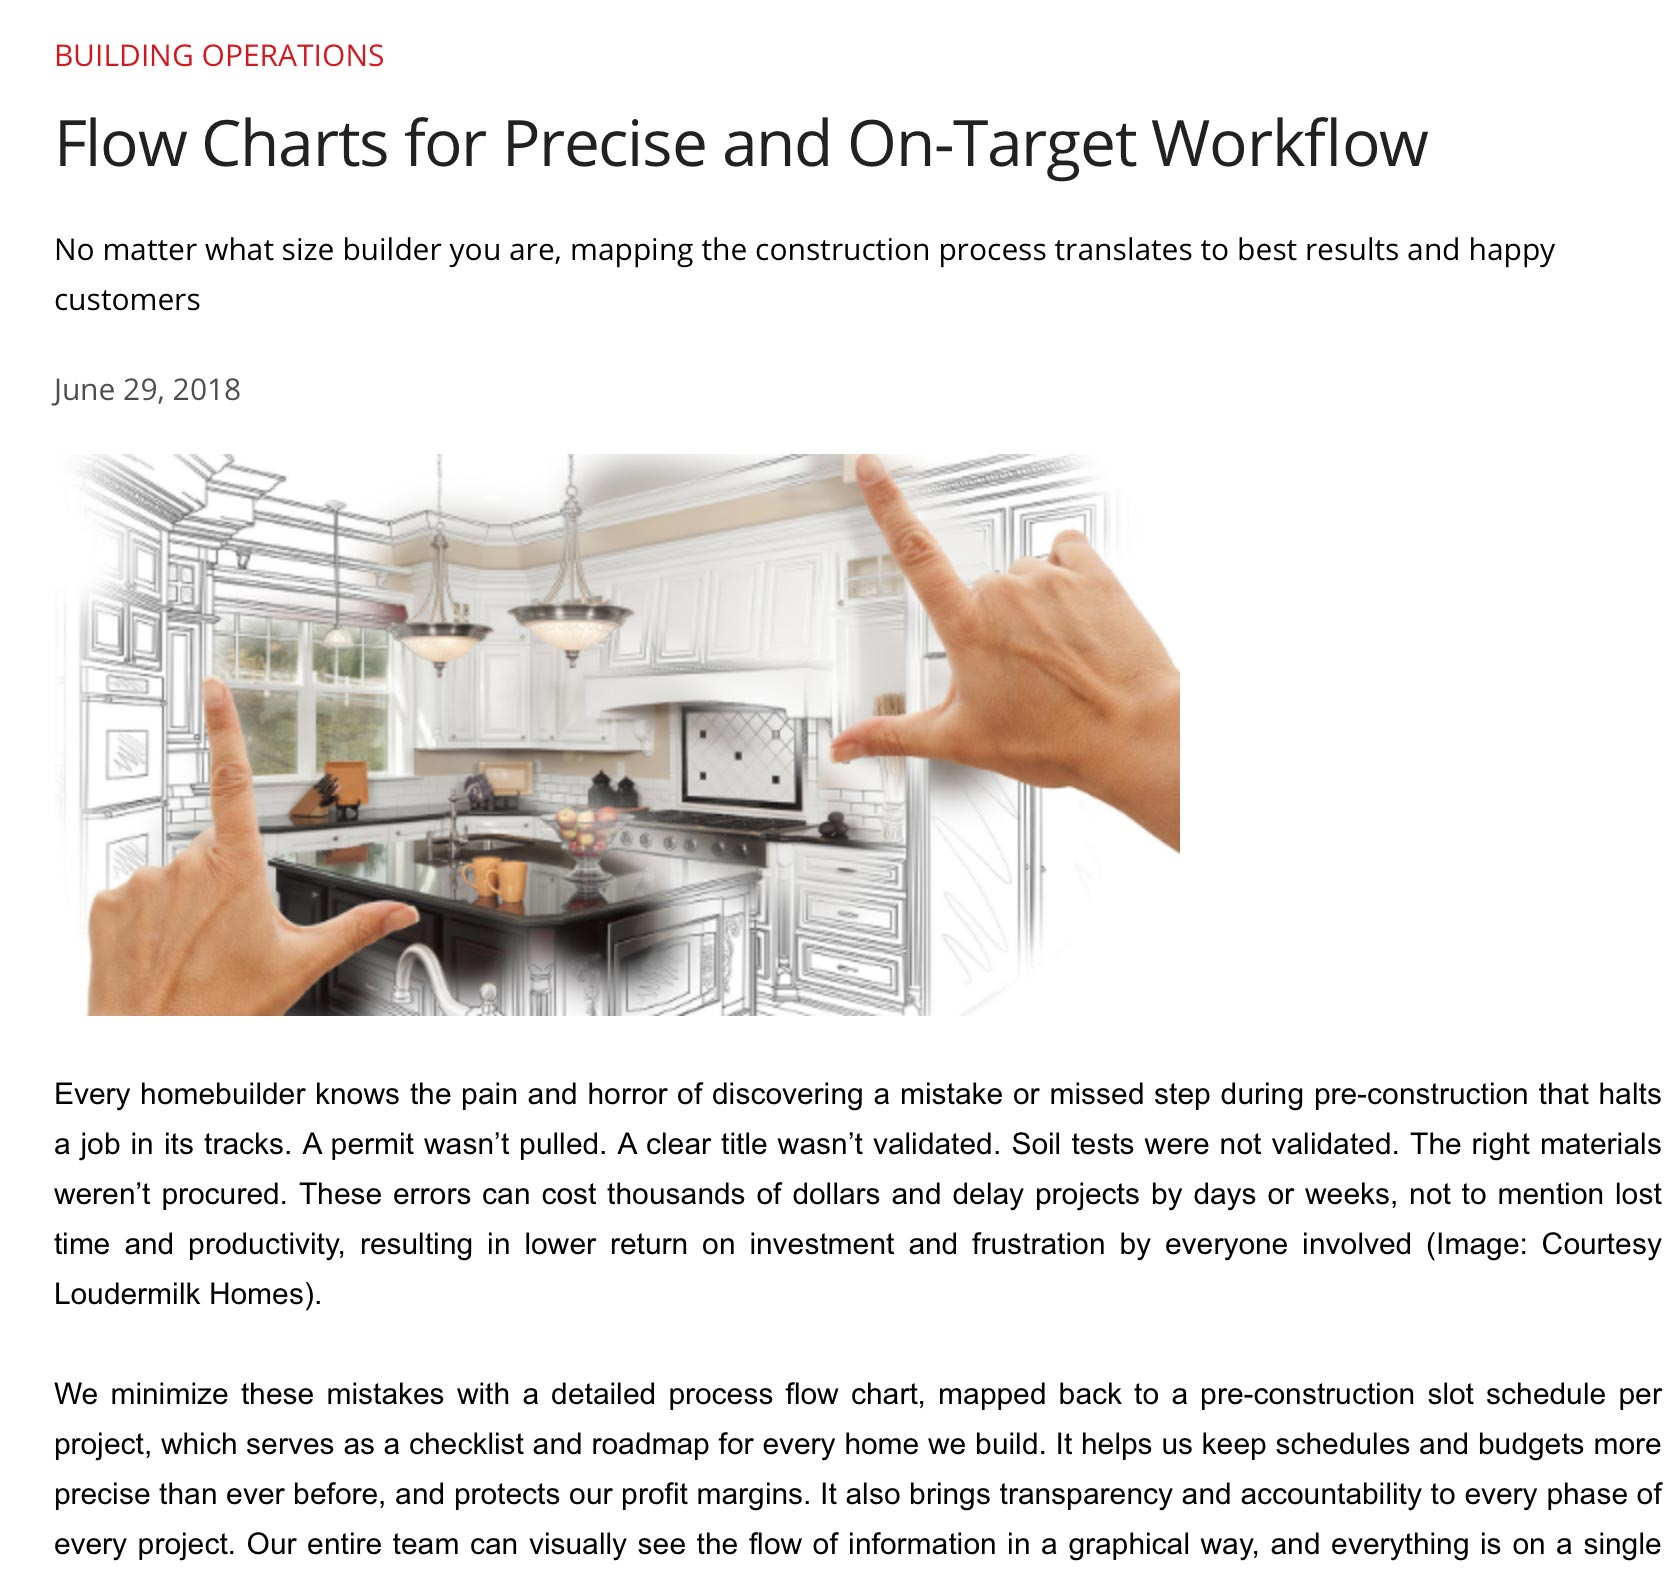 FLOW CHARTS FOR PRECISE AND ON-TARGET WORKFLOW